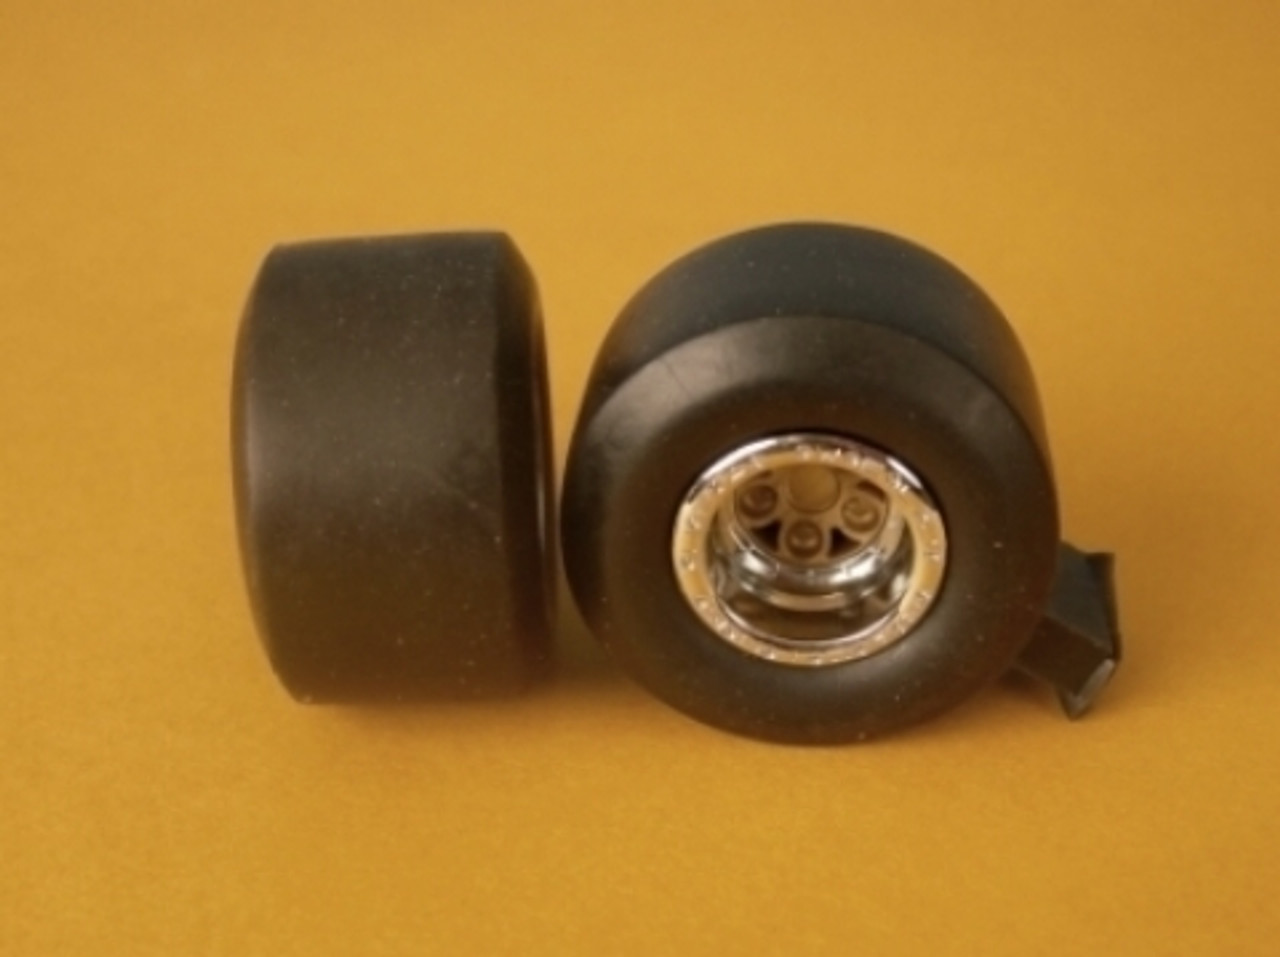 Shown with Pegasus wheels as an example.  Wheels are not included.